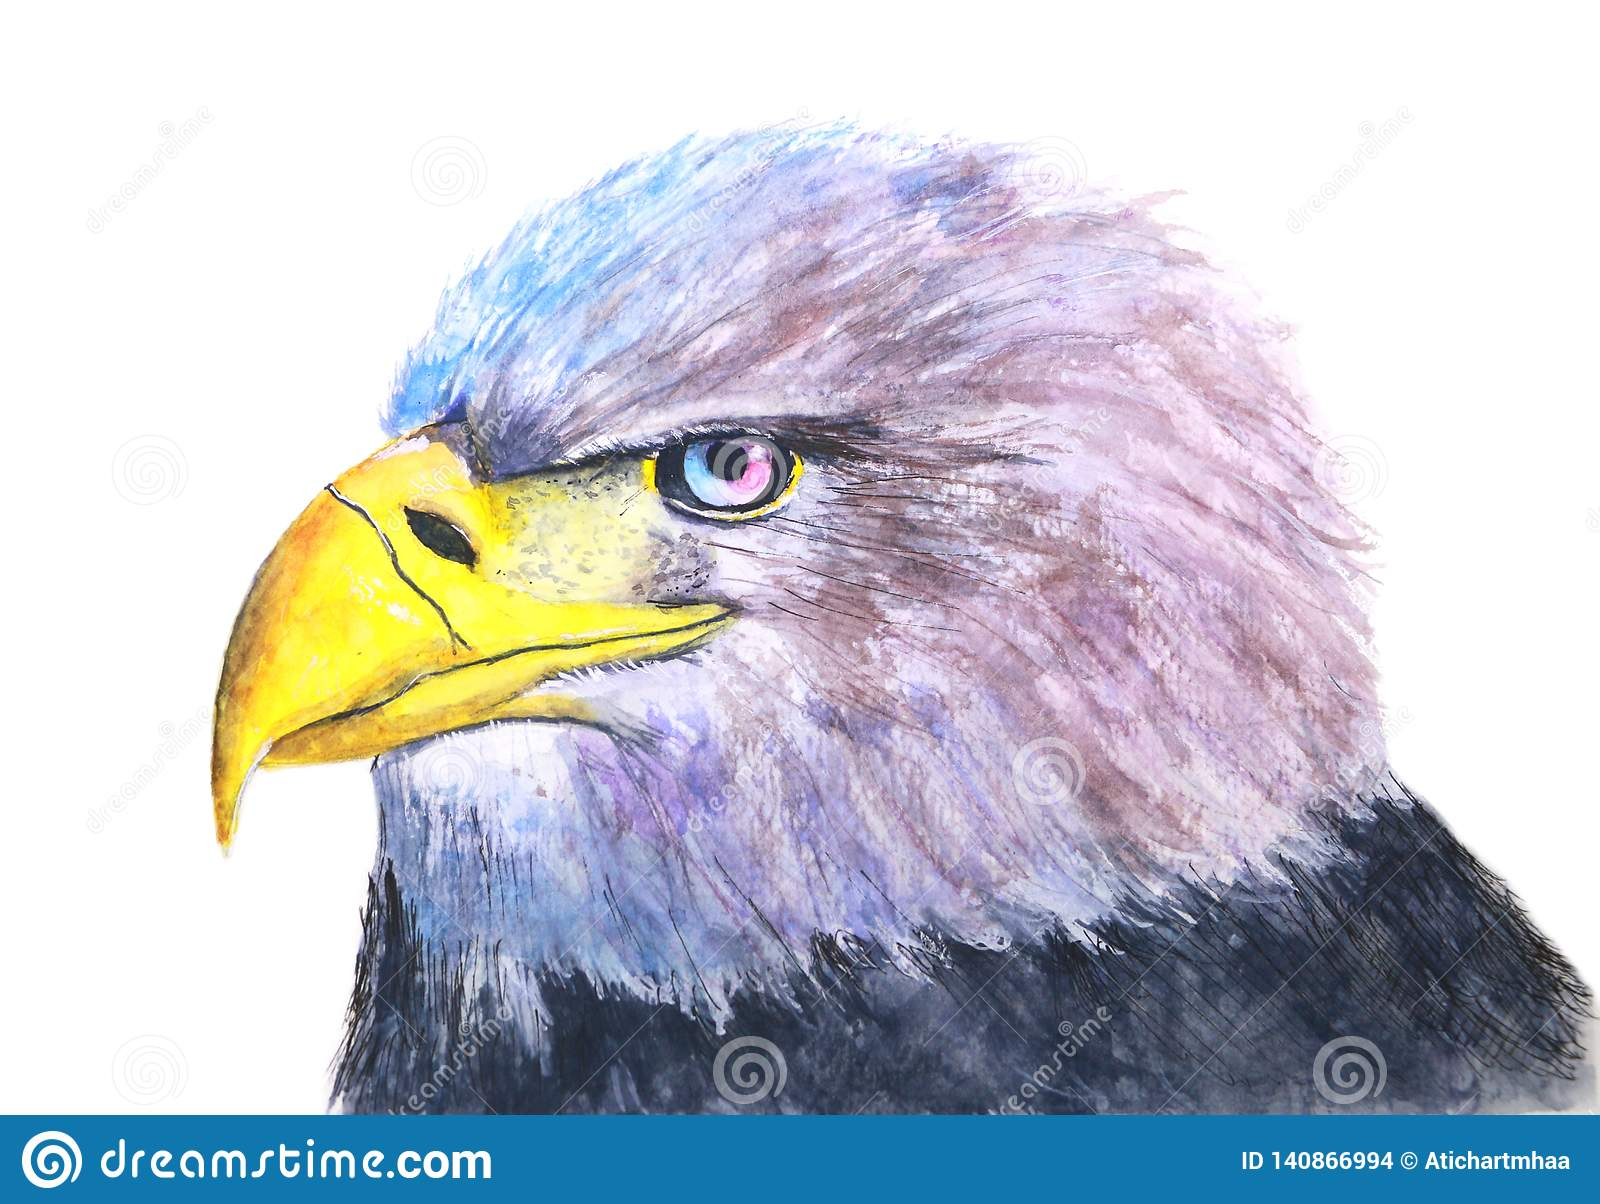 Hand-drawn watercolor isolated illustration of a bird eagle in white background